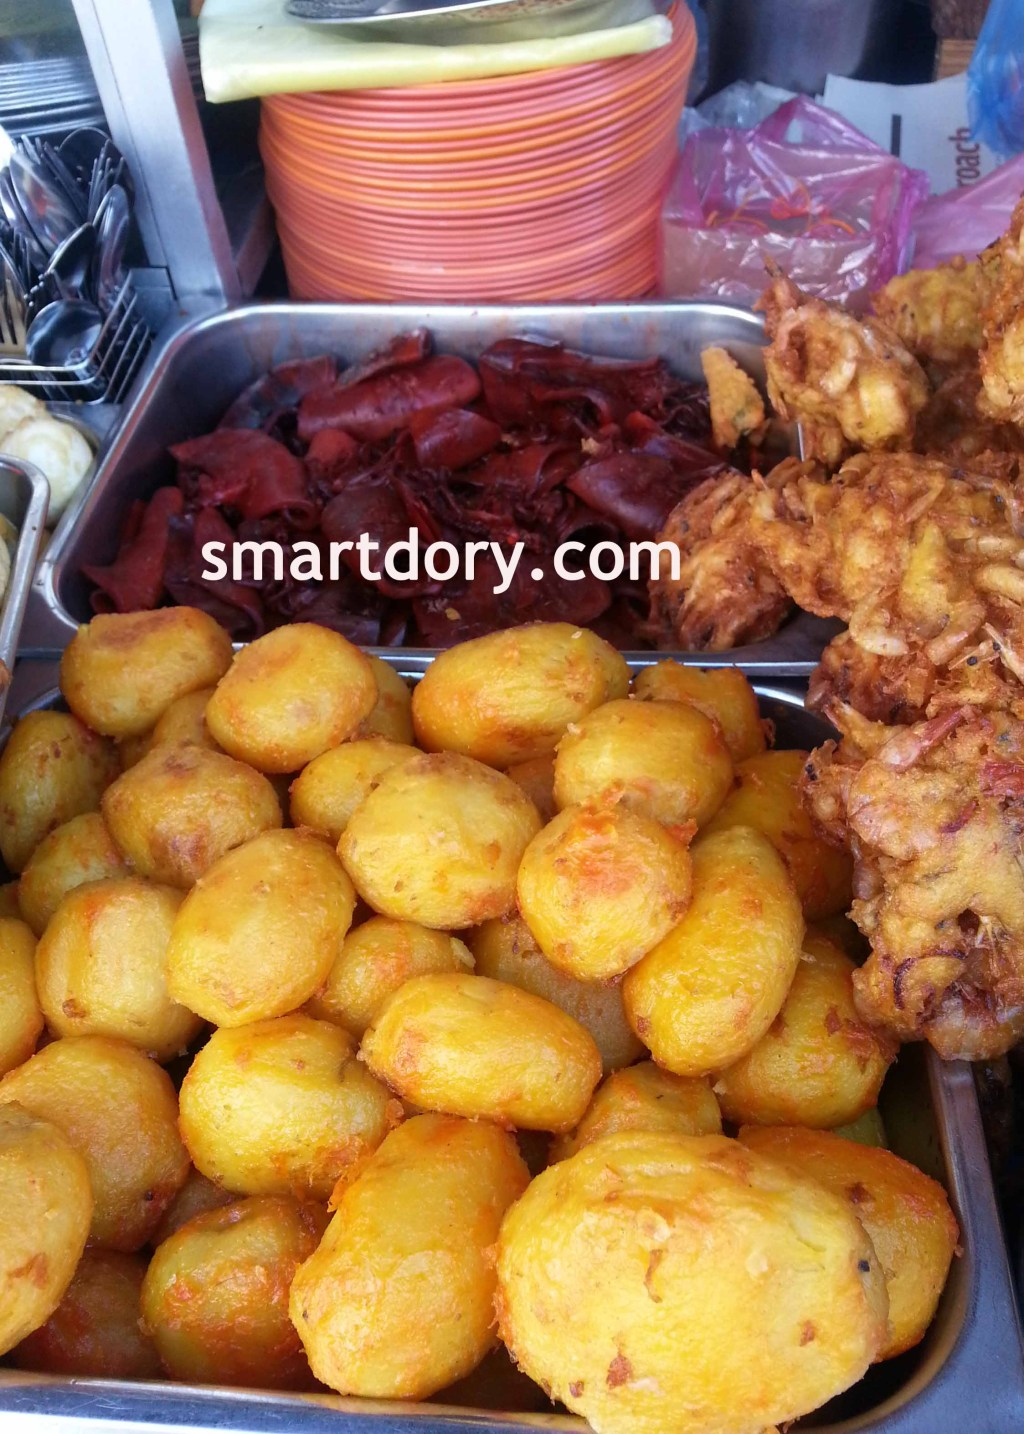 Fried whole potatoes, squid and prawn fritters.